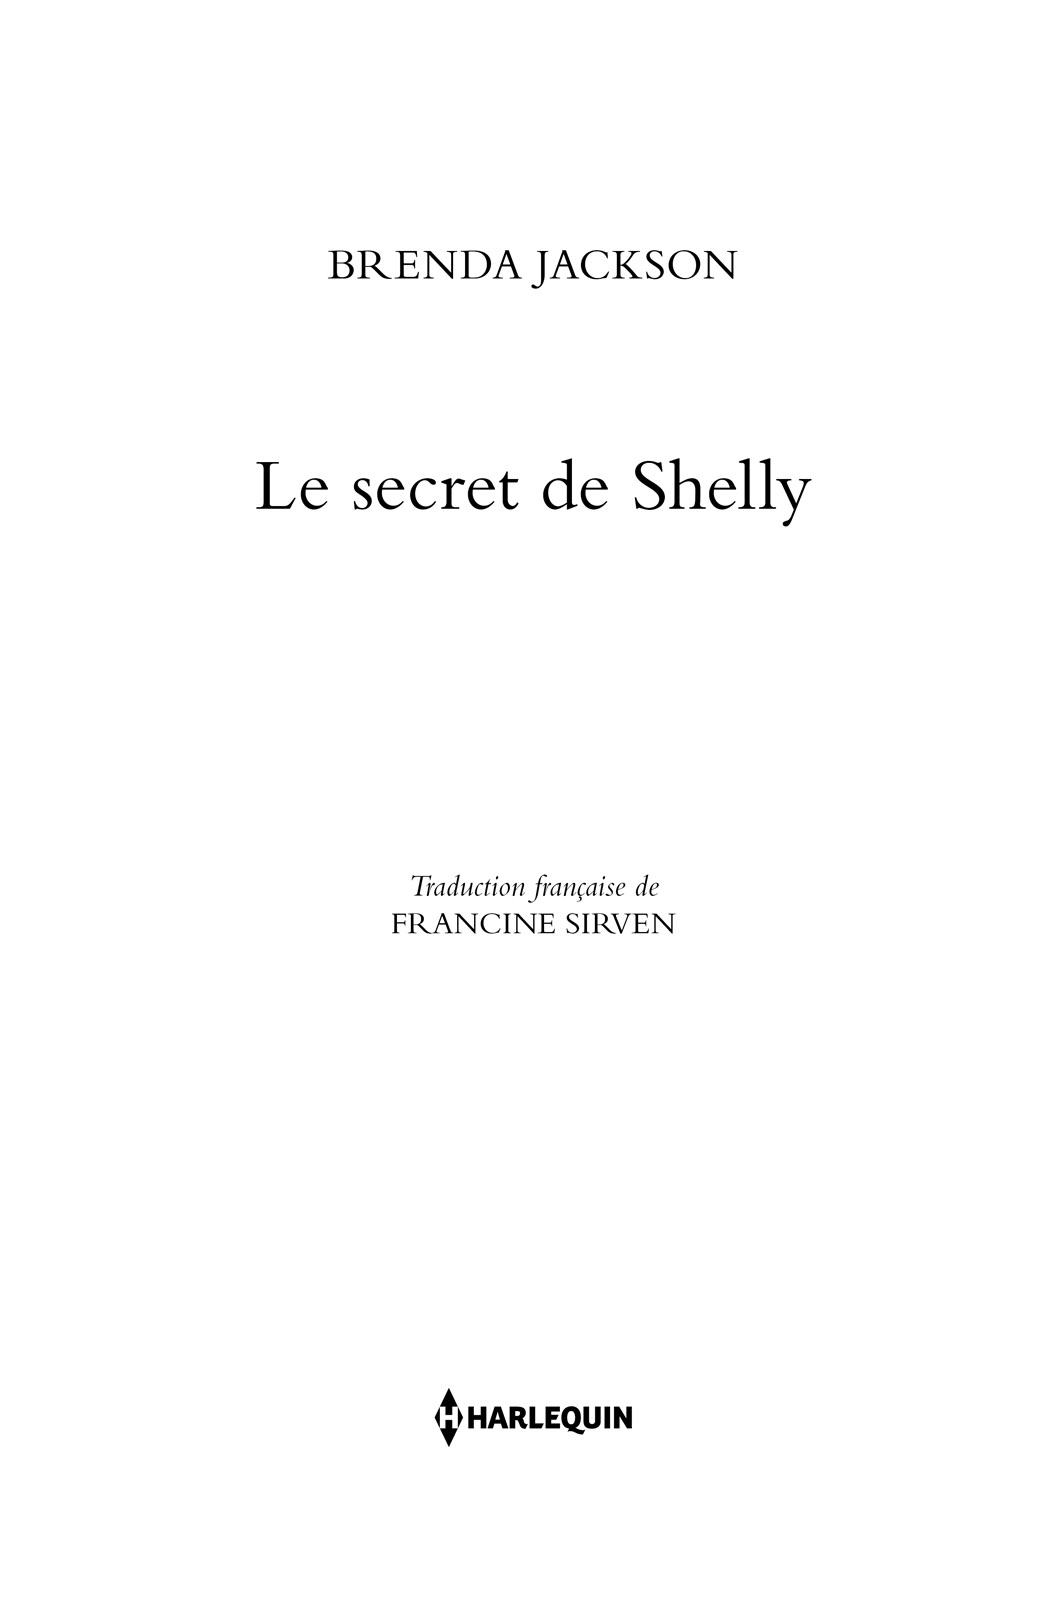 Page de titre : Brenda Jackson, Le secret de Shelly, Harlequin